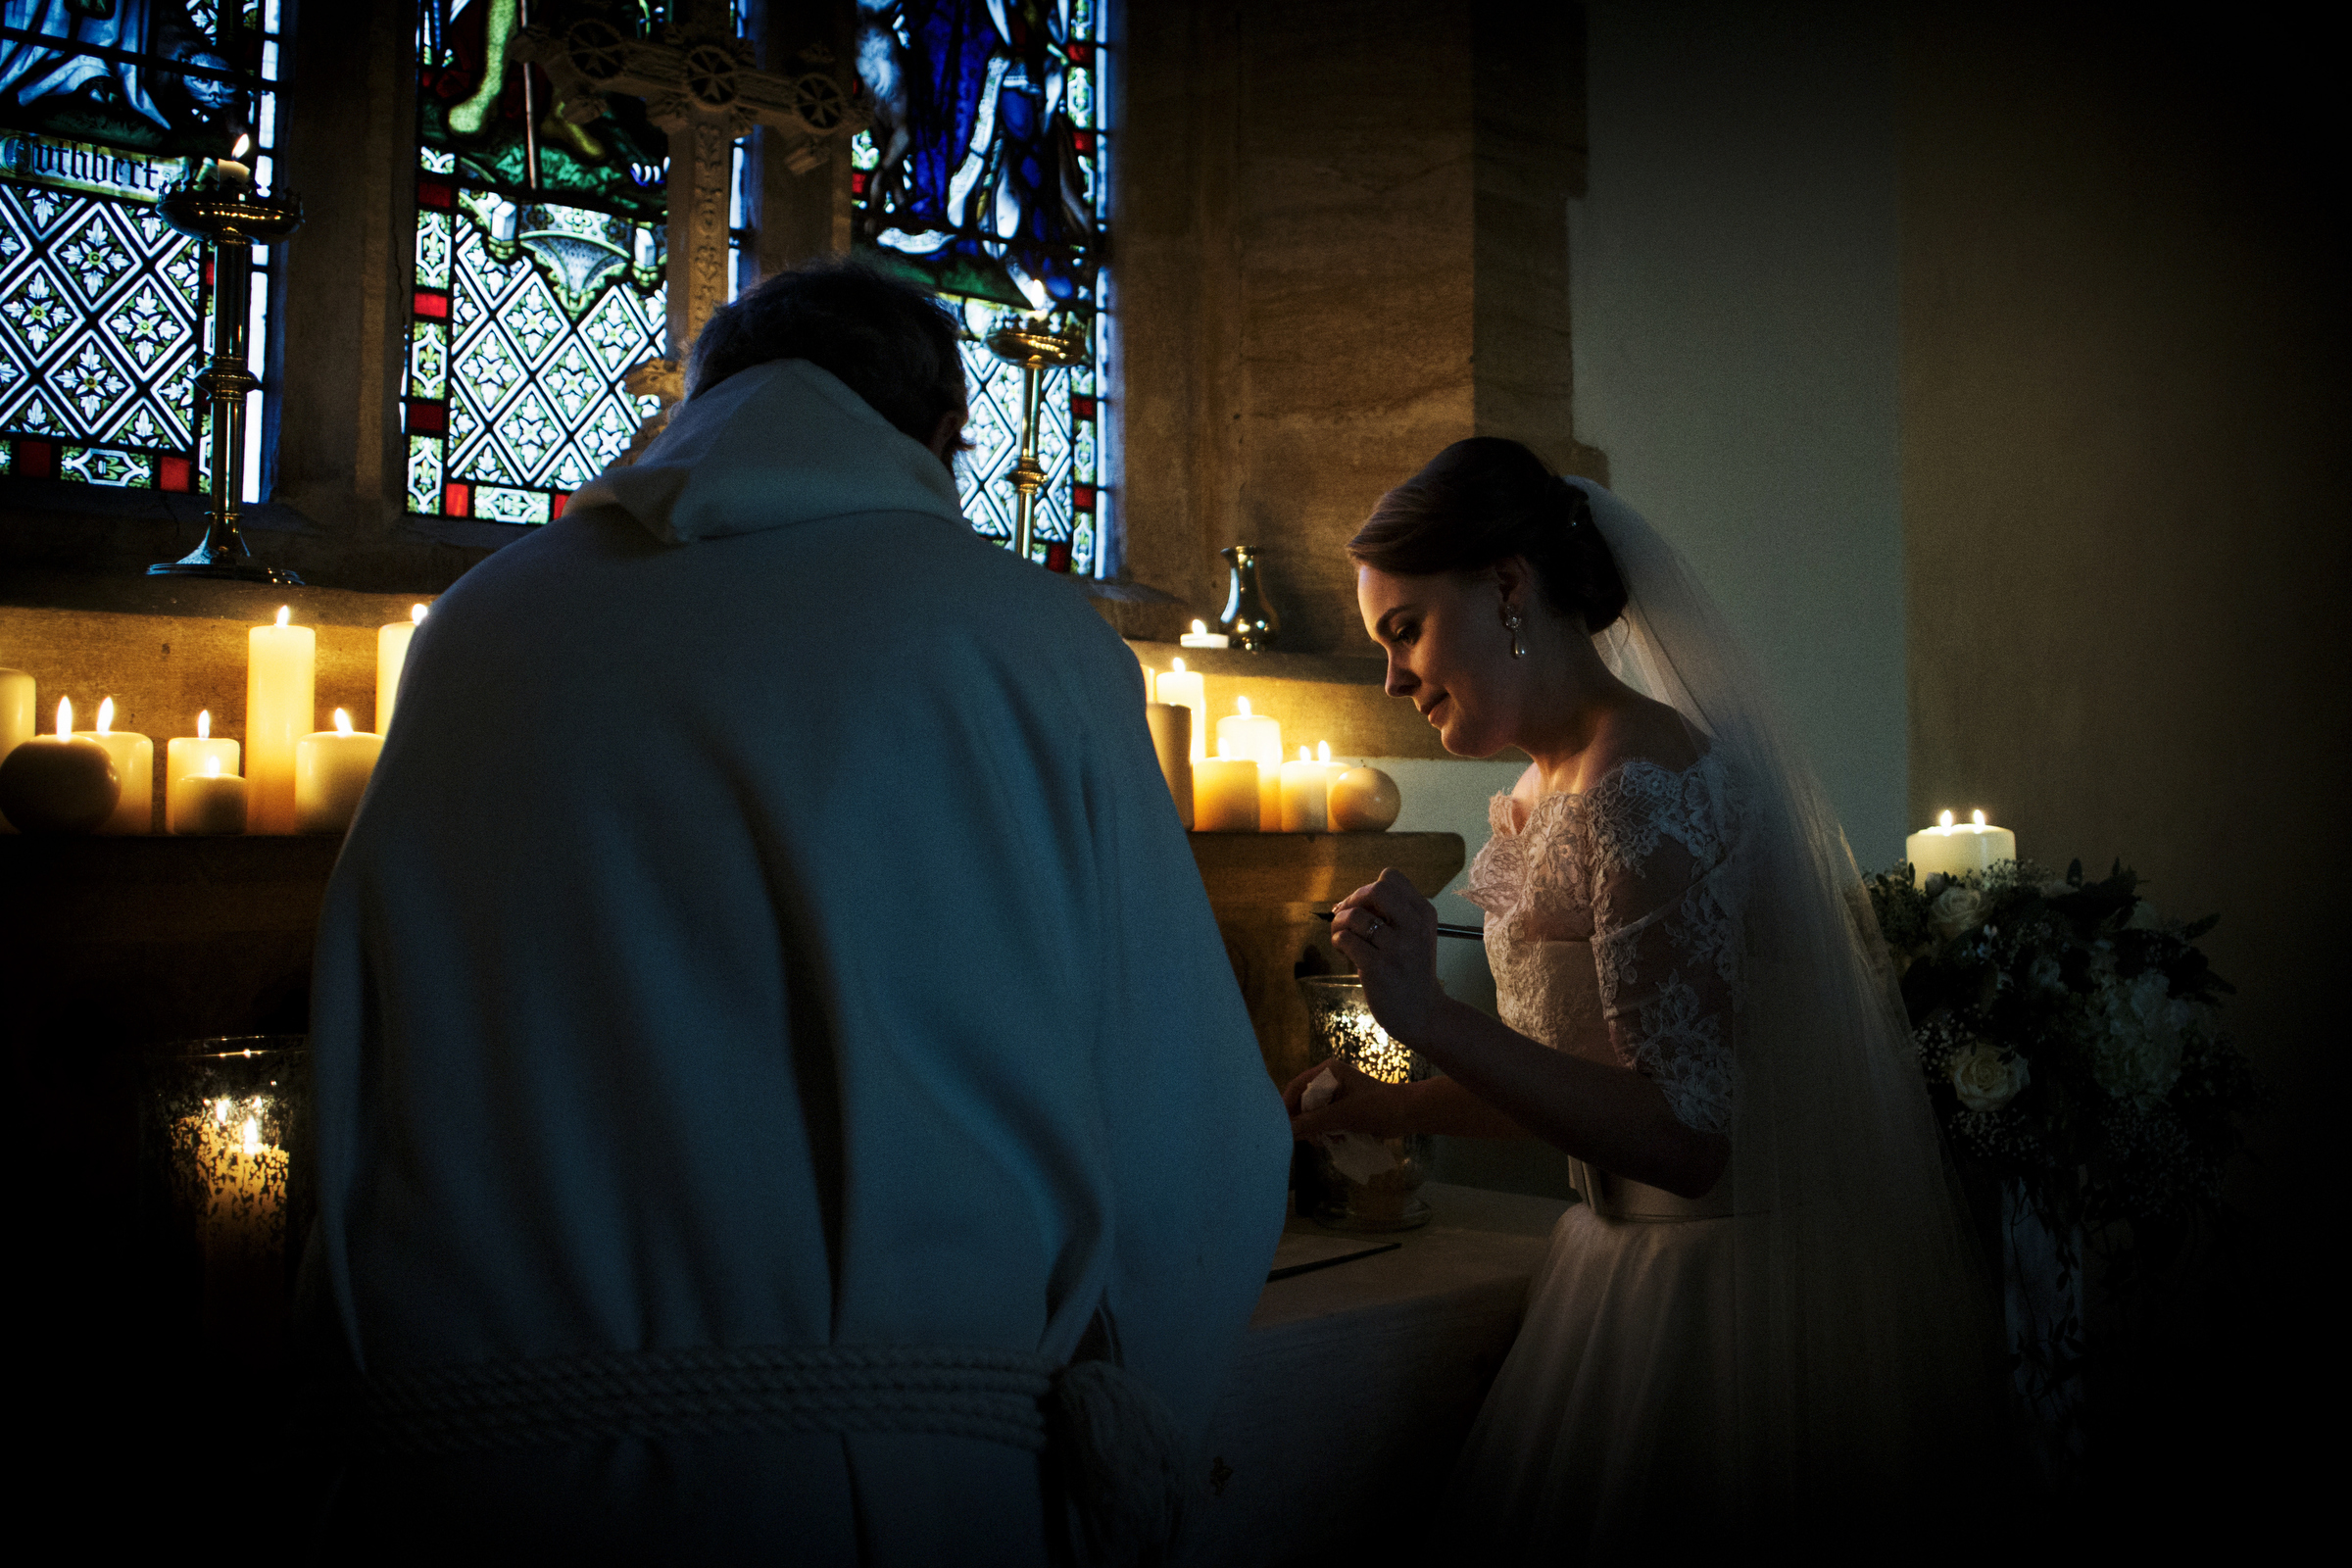 bride lights candle with priest - photo by Jeff Ascough